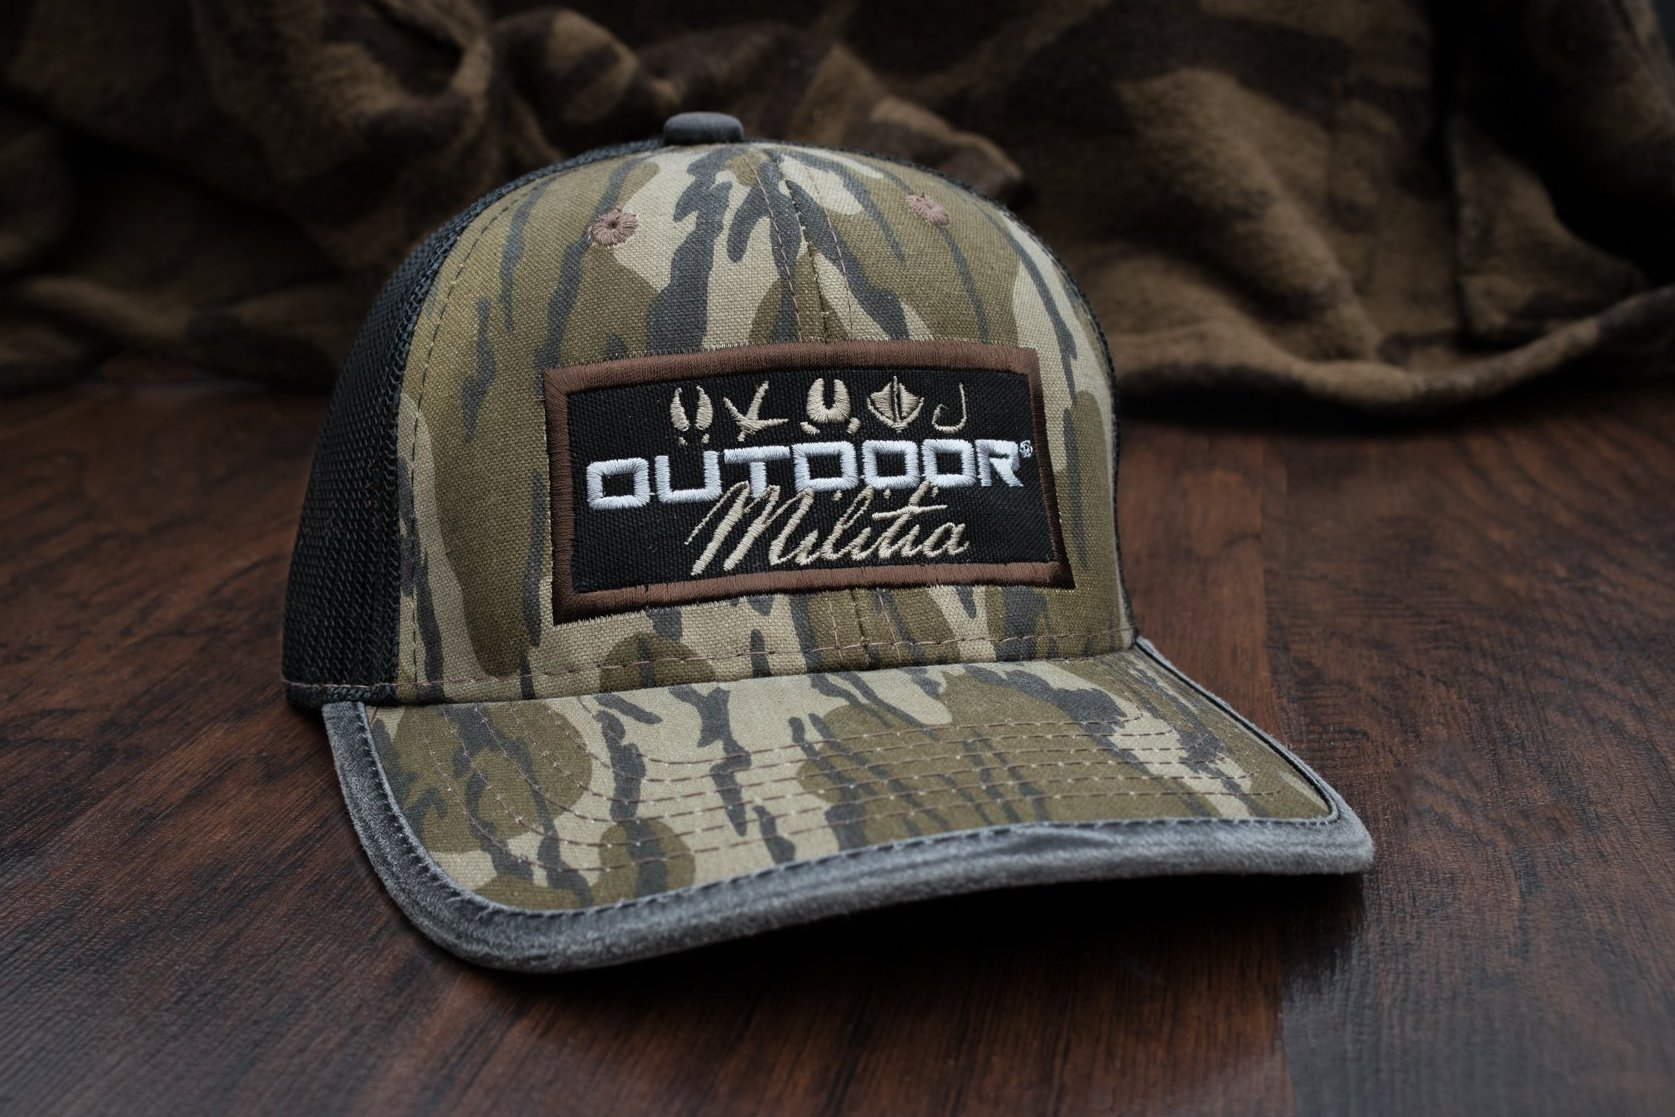 Patriot Back™ | Original Bottomland Patch - Outdoor Militia®